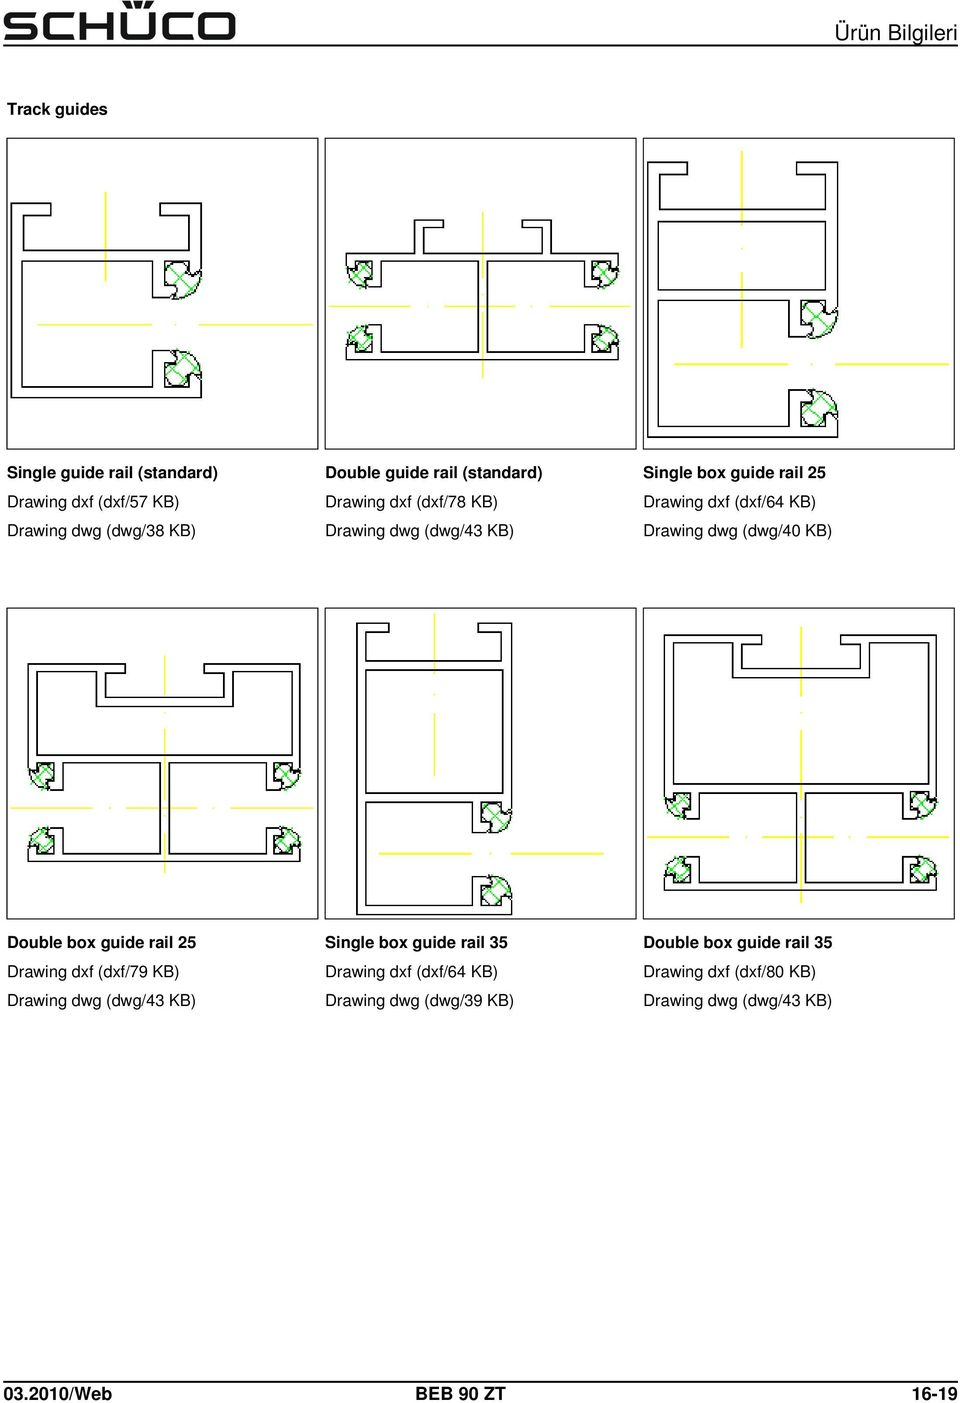 Double box guide rail 25 Drawing dxf (dxf/79 KB) Drawing dwg (dwg/43 KB) Single box guide rail 35 Drawing dxf (dxf/64 KB)